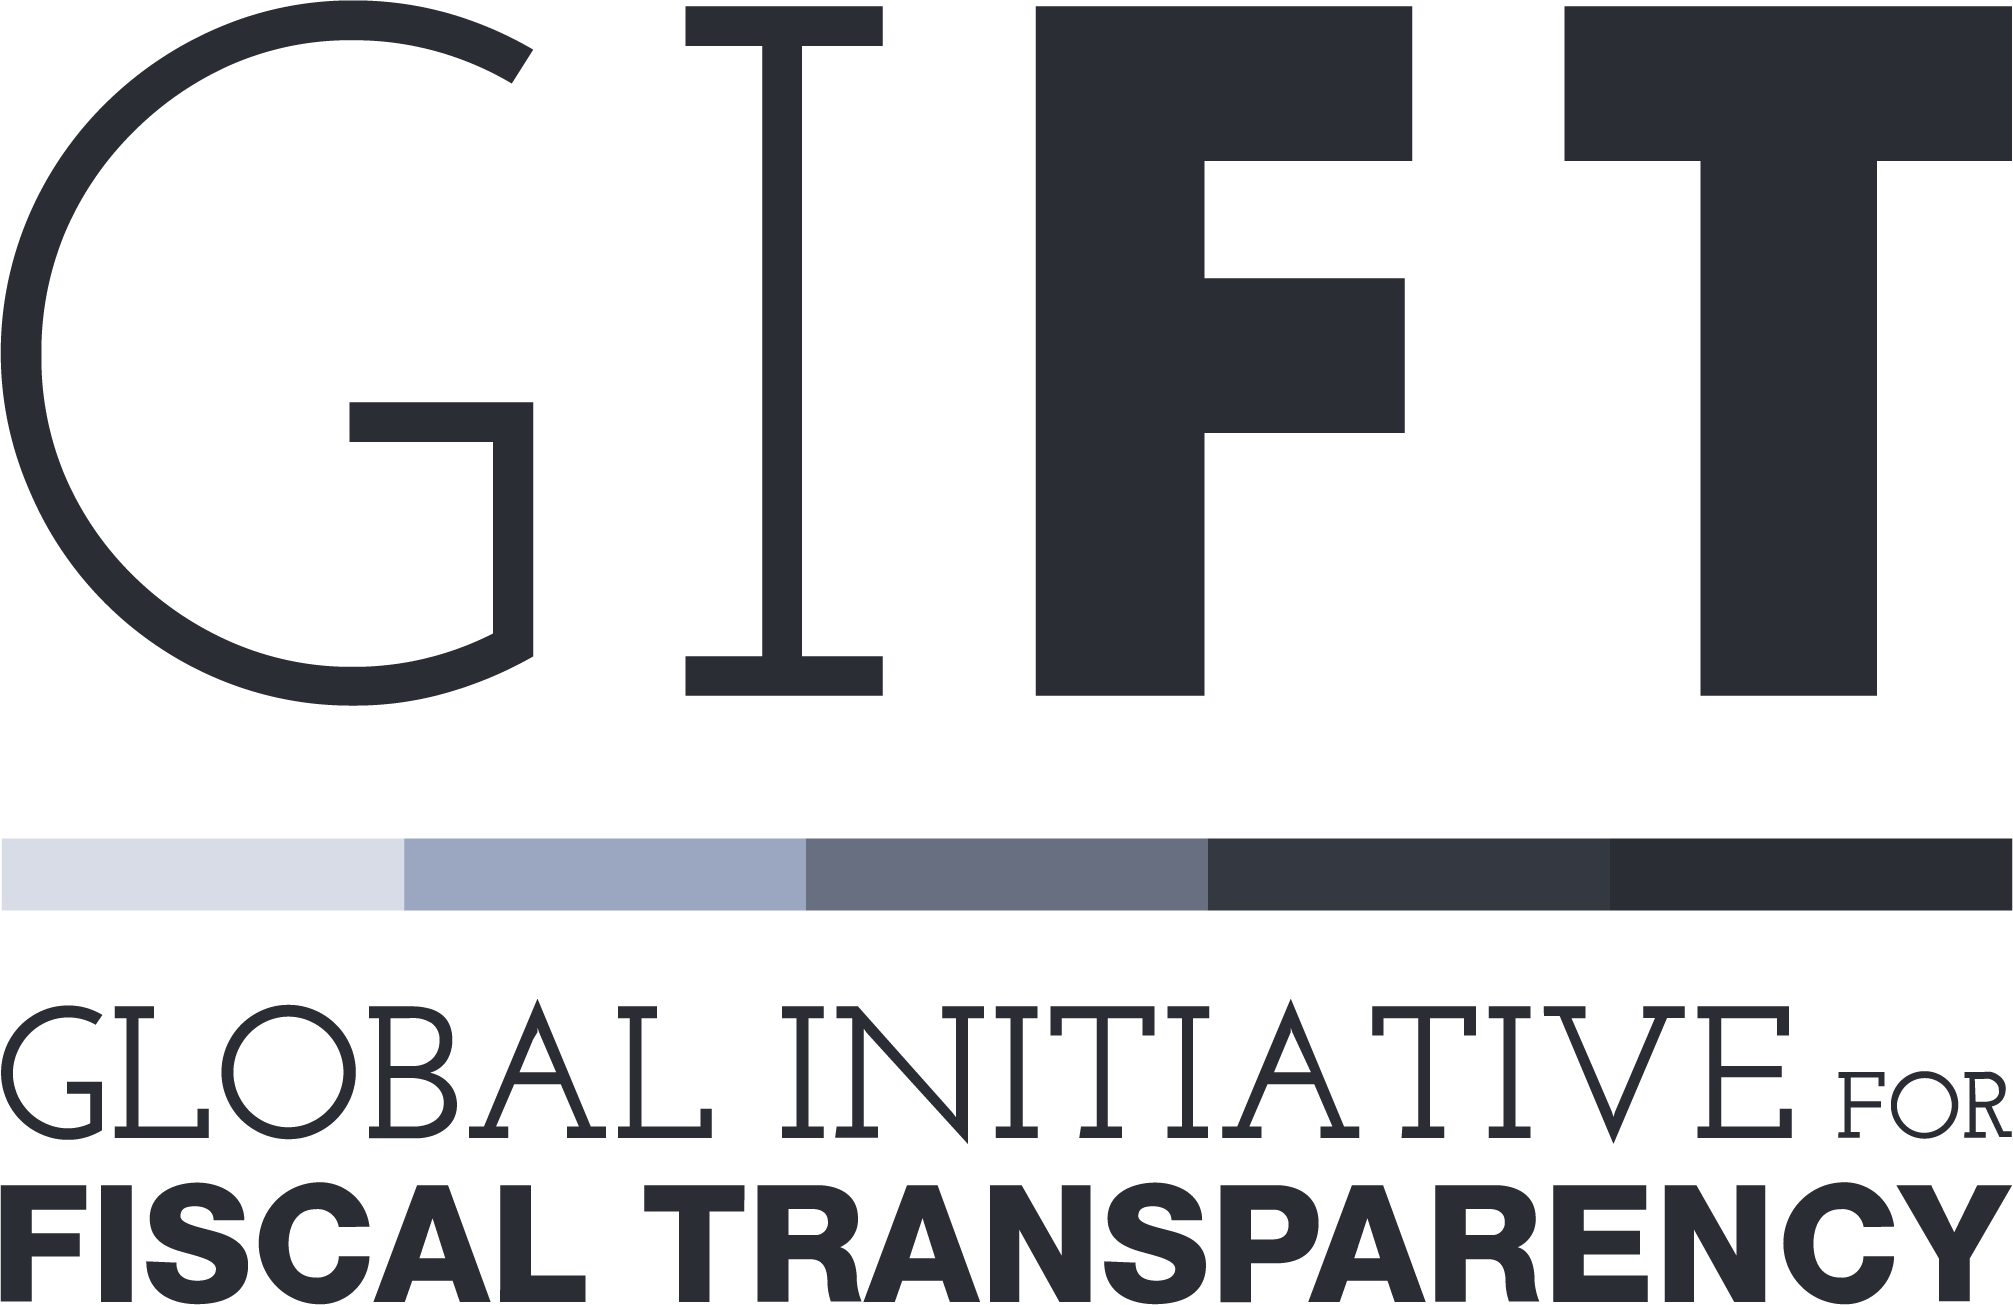 Global Initiative for Fiscal Transparency